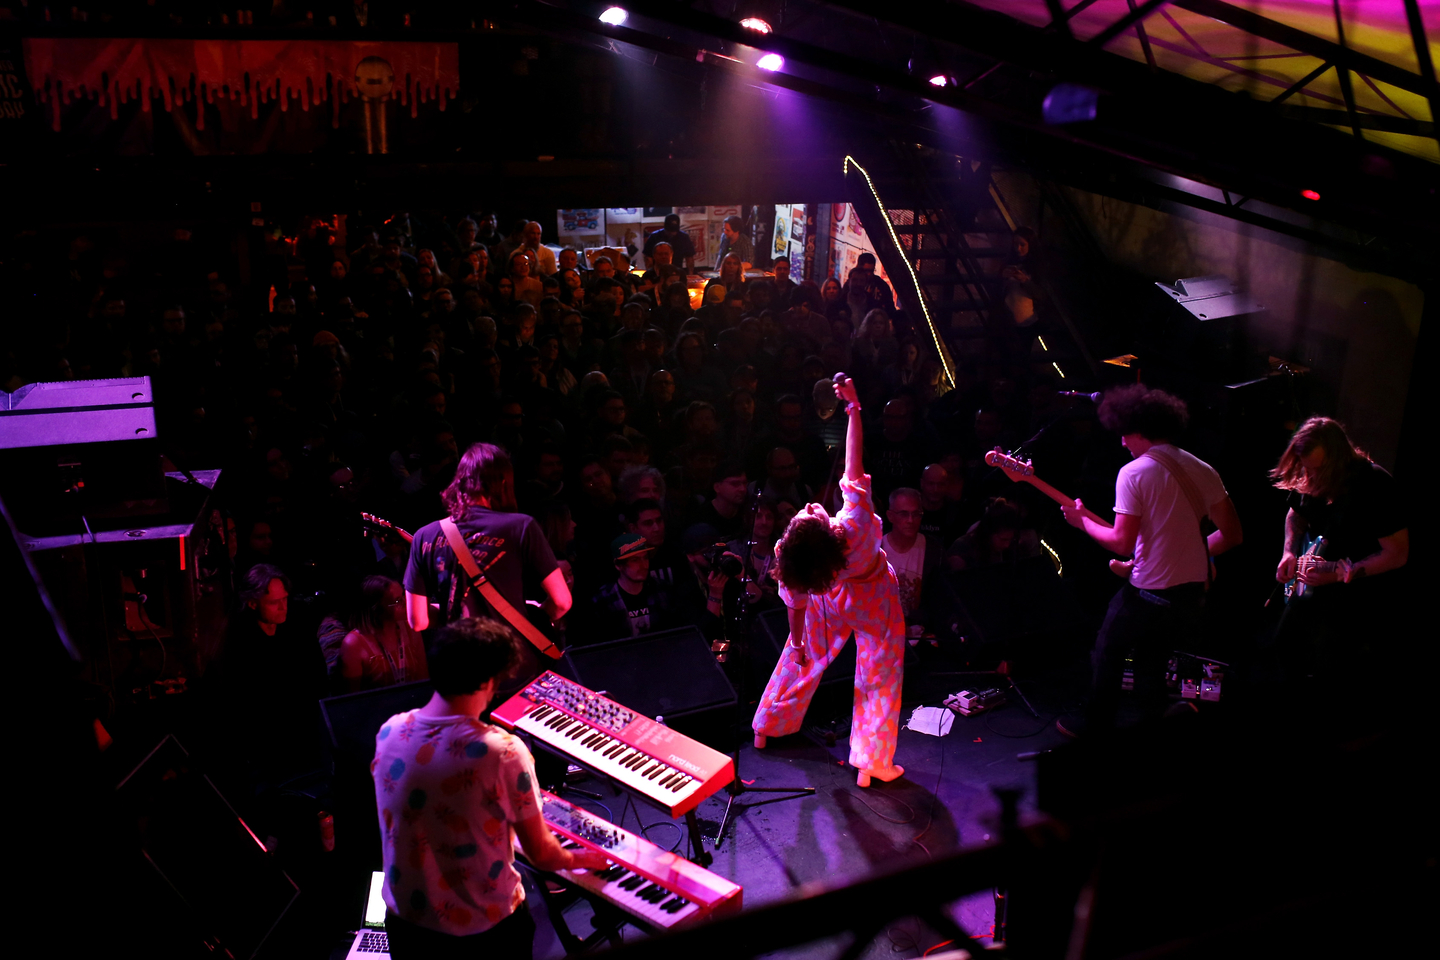 Jake Knight, Andrew Cashen, Sabrina Ellis, Jon Fichter, and Joshua Merry of Sweet Spirit perform onstage at The Onion & AV Club event at Mohawk. Photo by Travis P Ball/Getty Images for SXSW